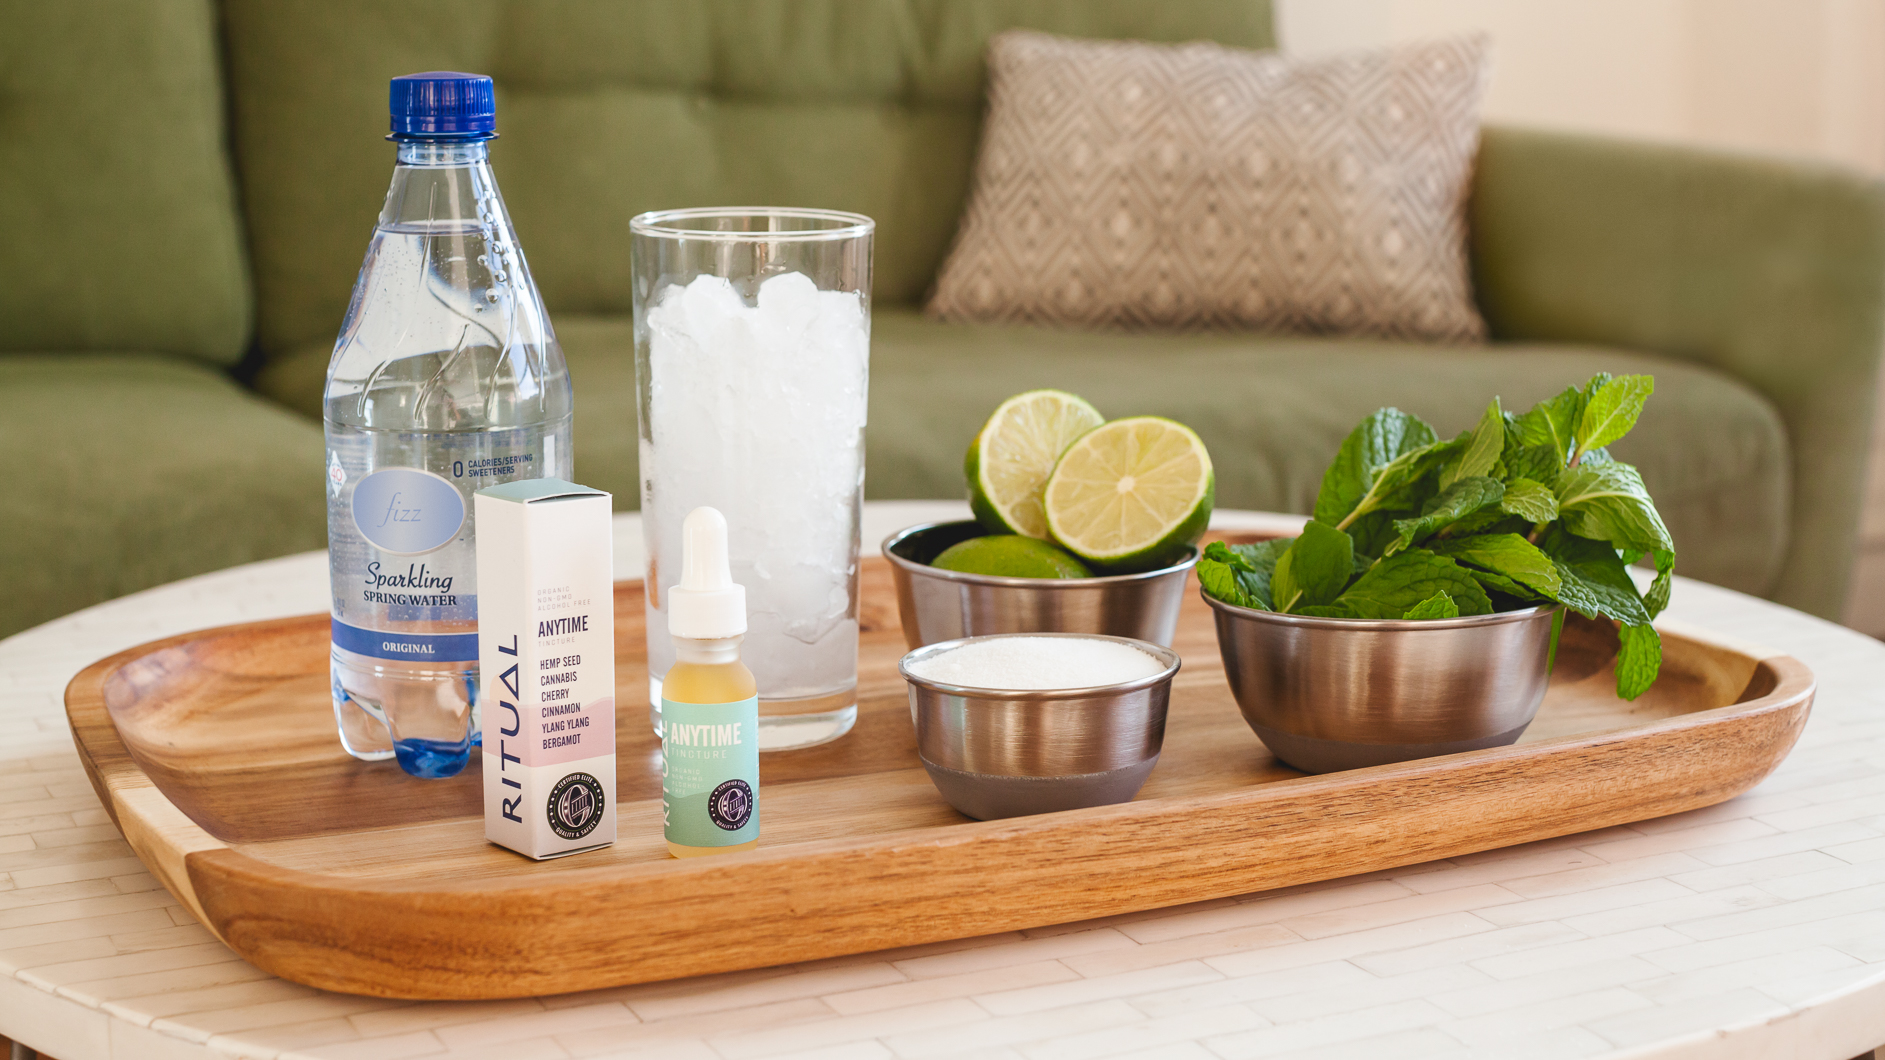 Image of all the ingredients to make an alcohol-free cannabis mojitos